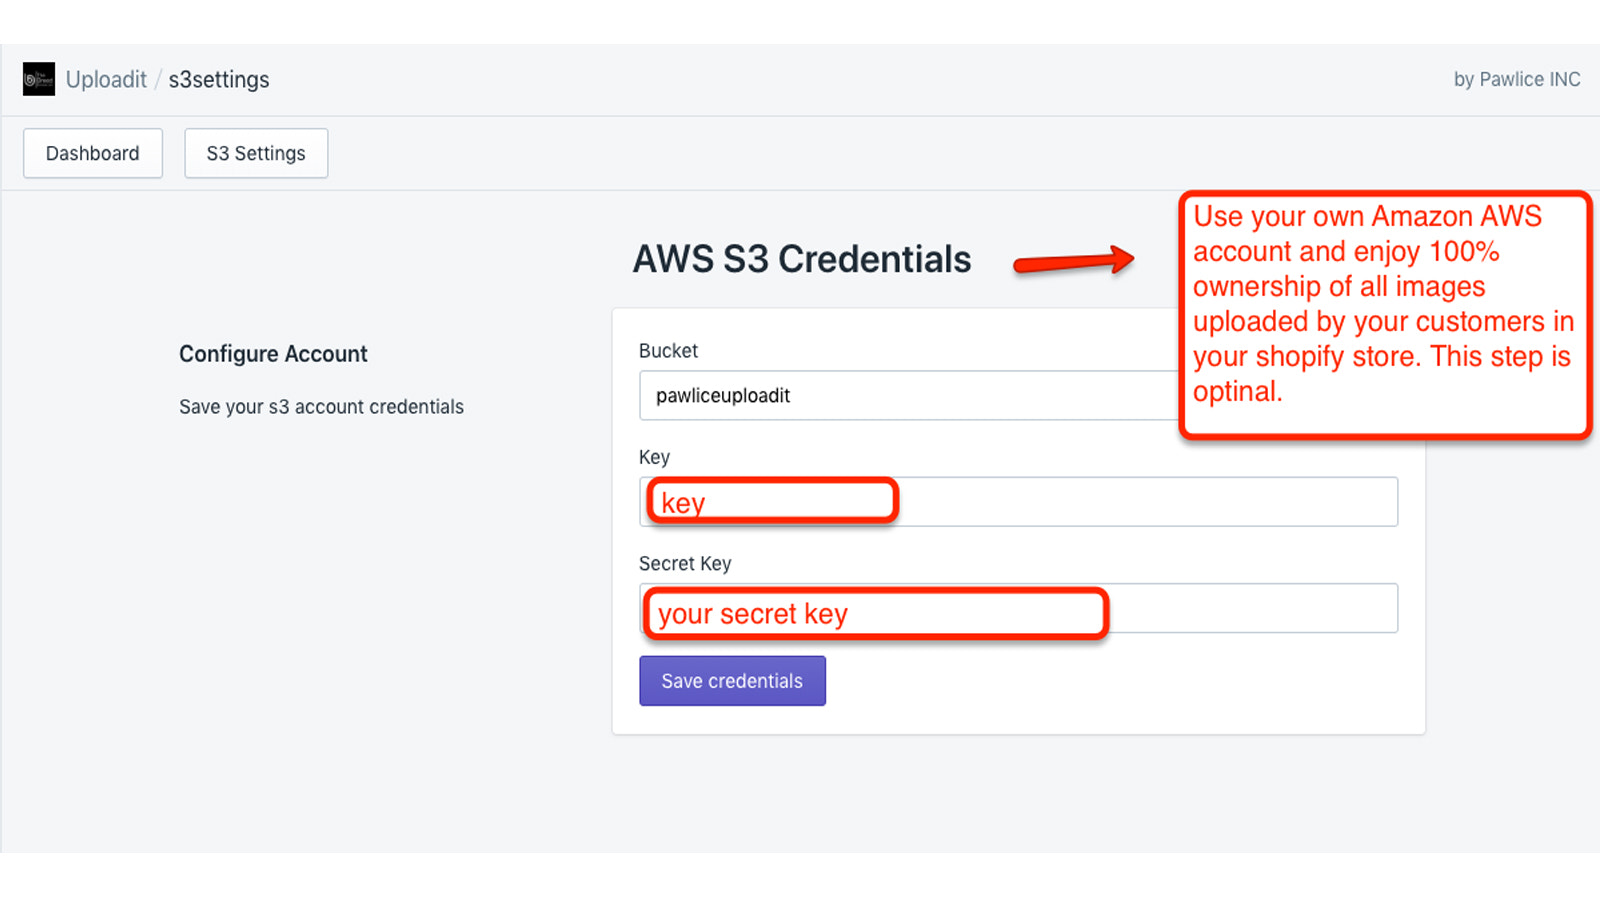 Use your own Amazon AWS account for 100% image ownership.